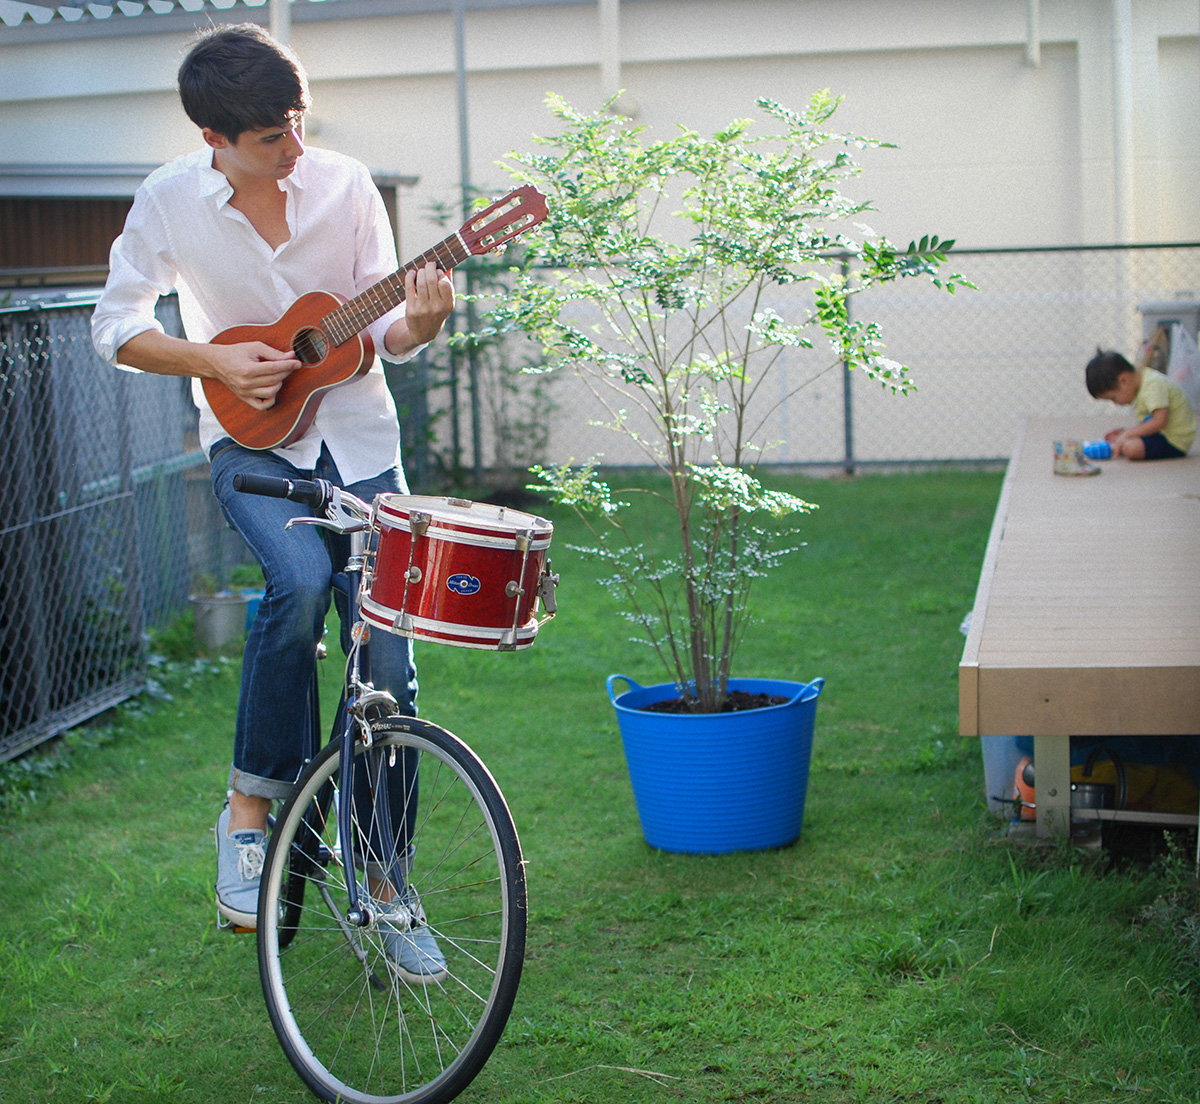 Lullatone: Shawn on the Bike with Drum and Guitalele